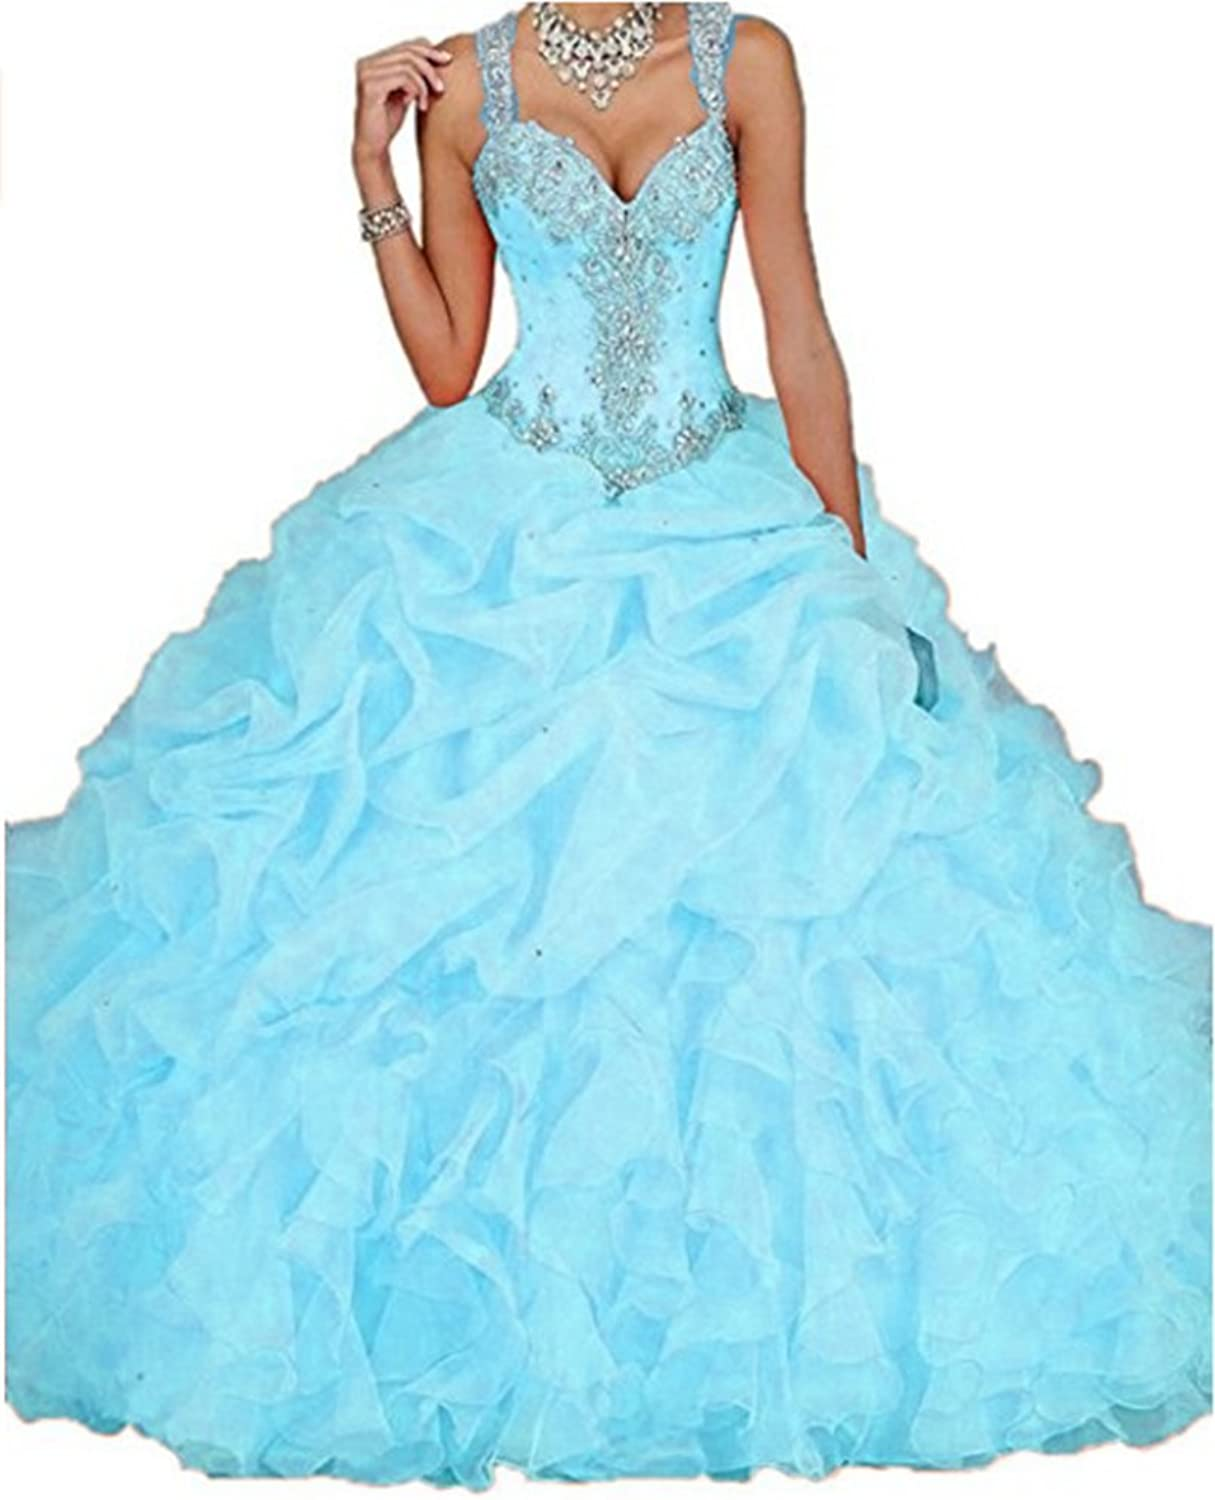 ANGELA Women's Sweetheart Organza Ball Gown Prom Quinceanera Dresses